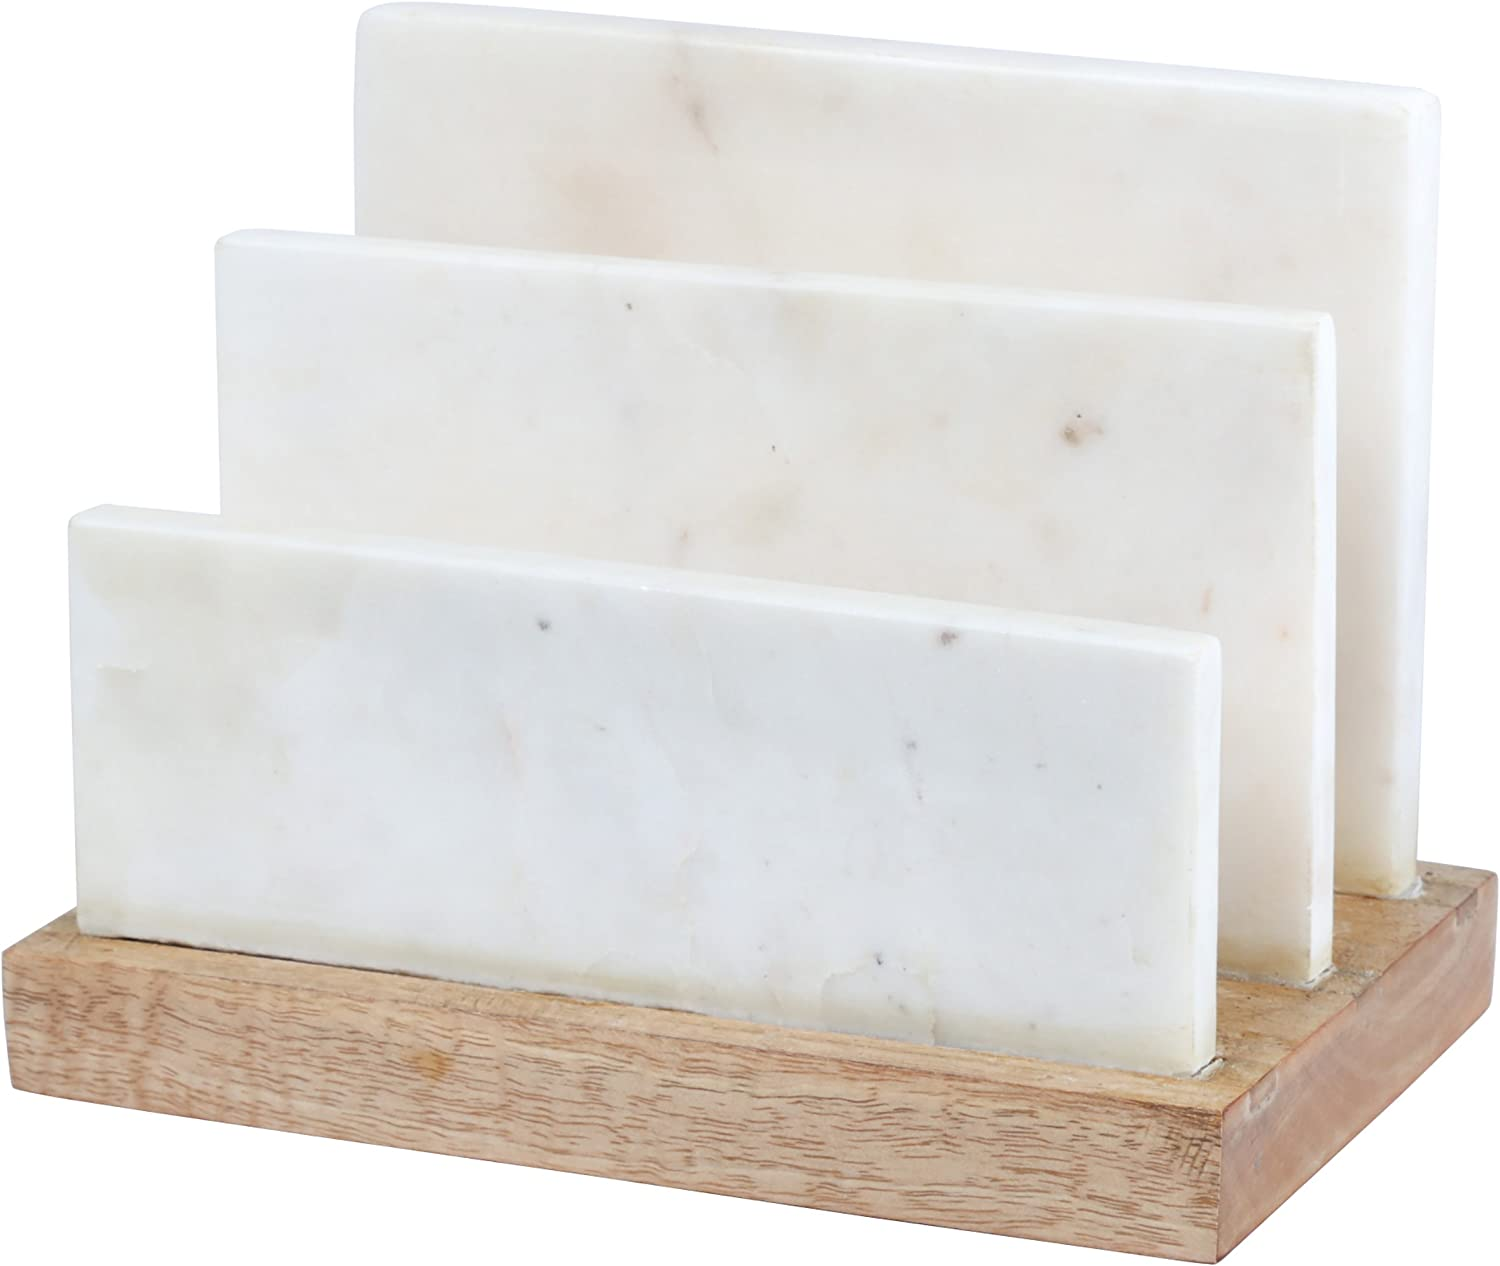 """Creative Home Natural Marble and Mango Wood Letter and Document Sorter, Organizer, 7-1/2"""" x 4-3/8"""" x 5-7/8"""" H, Off-White (Patterns May Very)"""